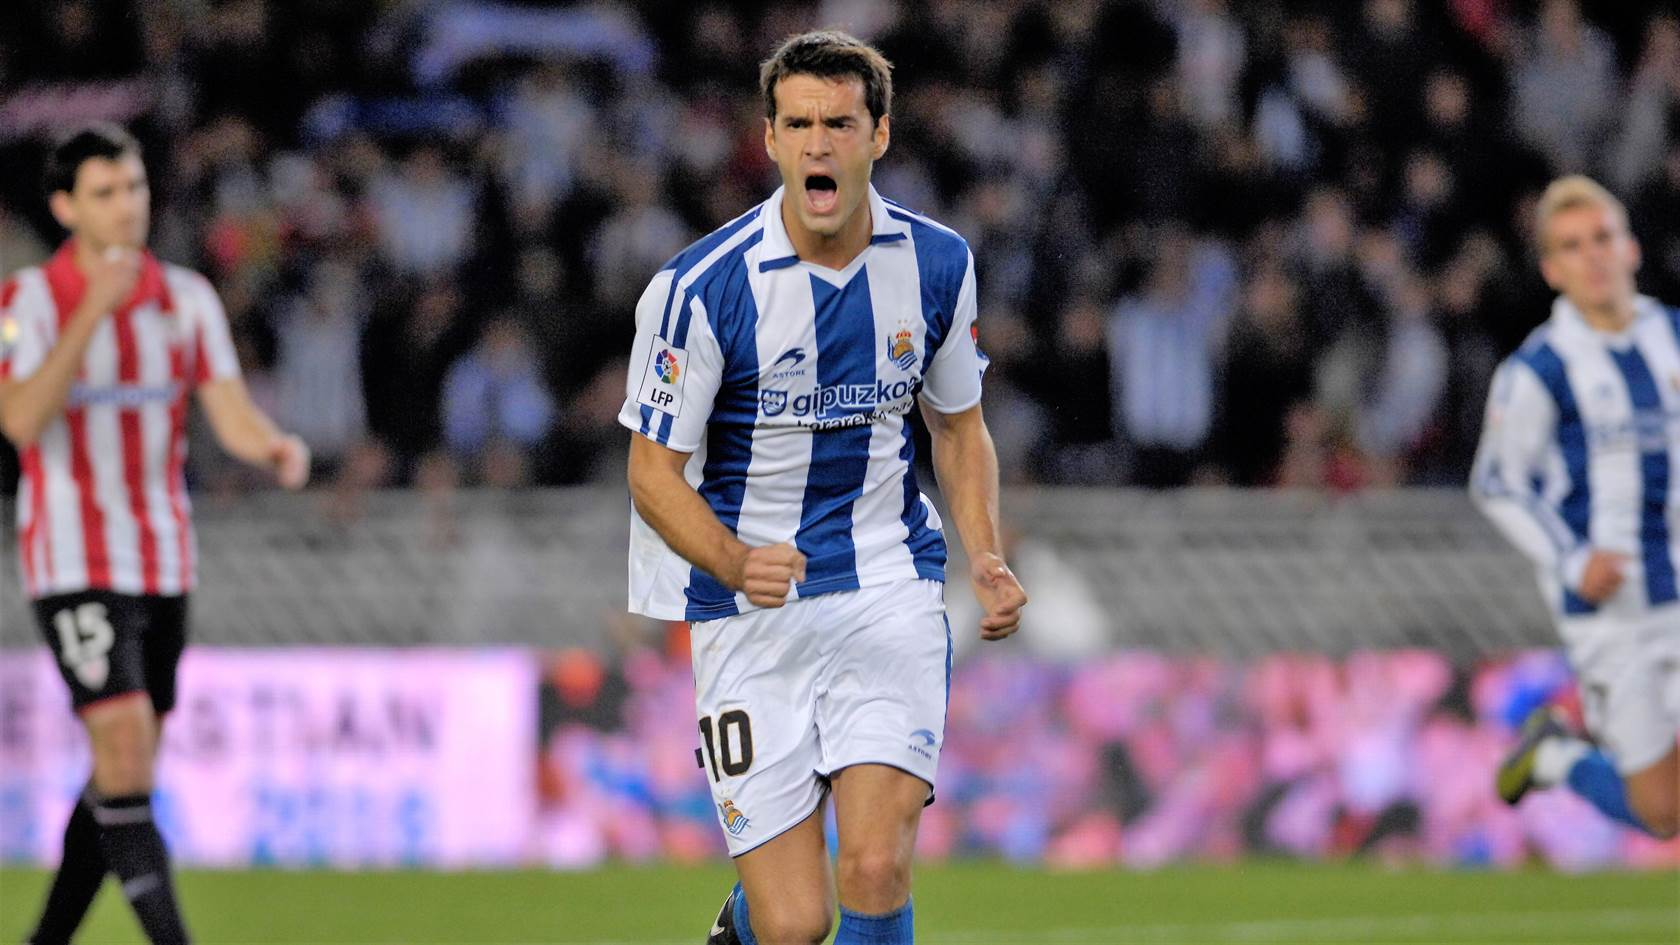 Real Sociedad Vs Athletic Bilbao Premium Football